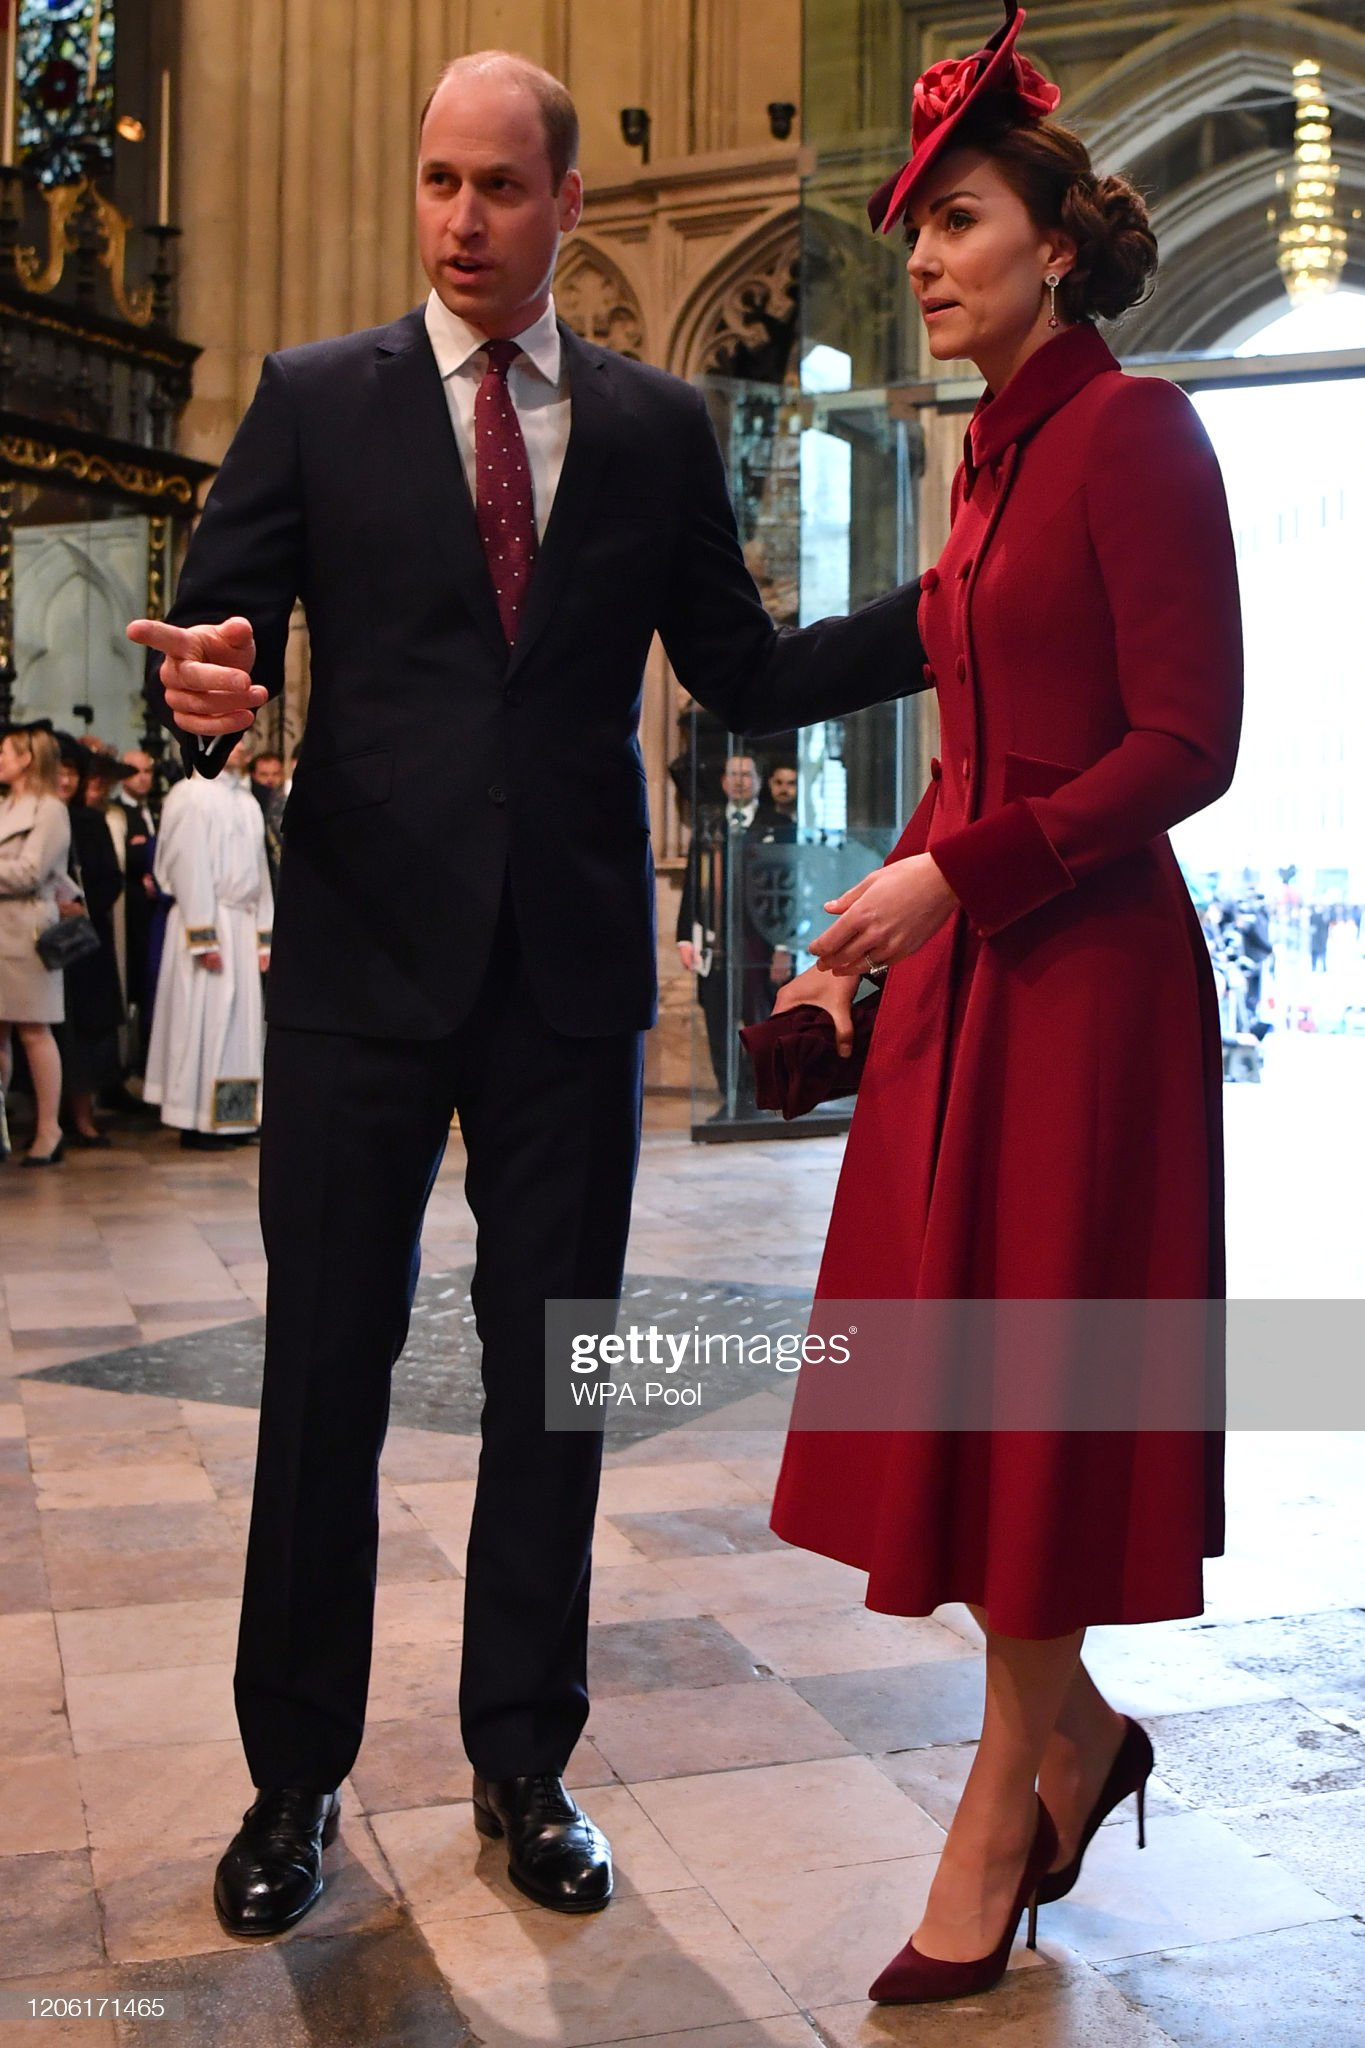 https://media.gettyimages.com/photos/prince-william-duke-of-cambridge-and-catherine-duchess-of-cambridge-picture-id1206171465?s=2048x2048